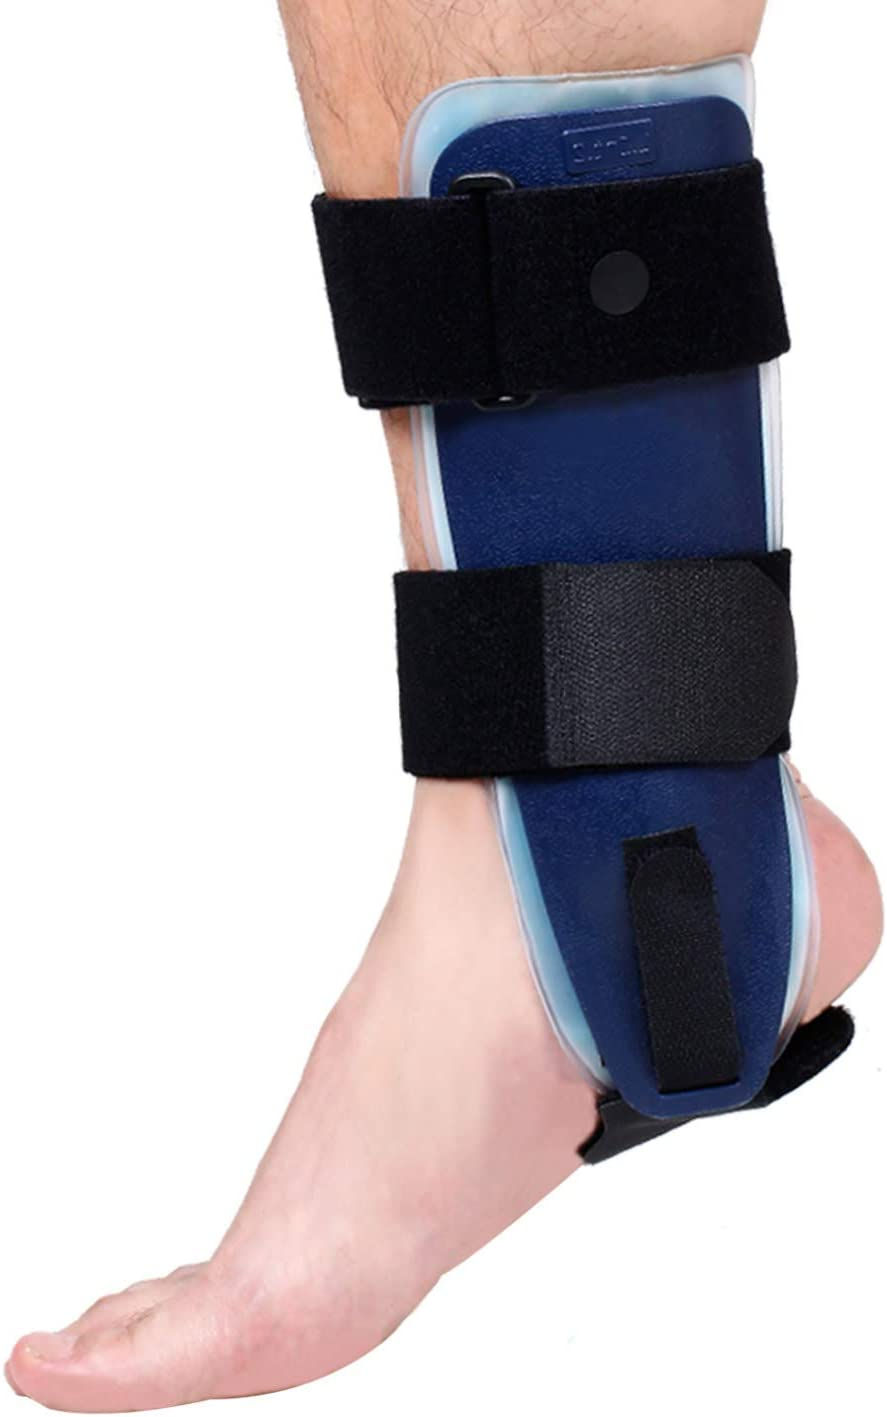 Velpeau Ankle Brace - Stirrup Ankle Splint - Adjustable Rigid Stabilizer for Sprains, Strains, Post-Op Cast Support and Injury Protection (Gel Pads, Small - Right Foot)